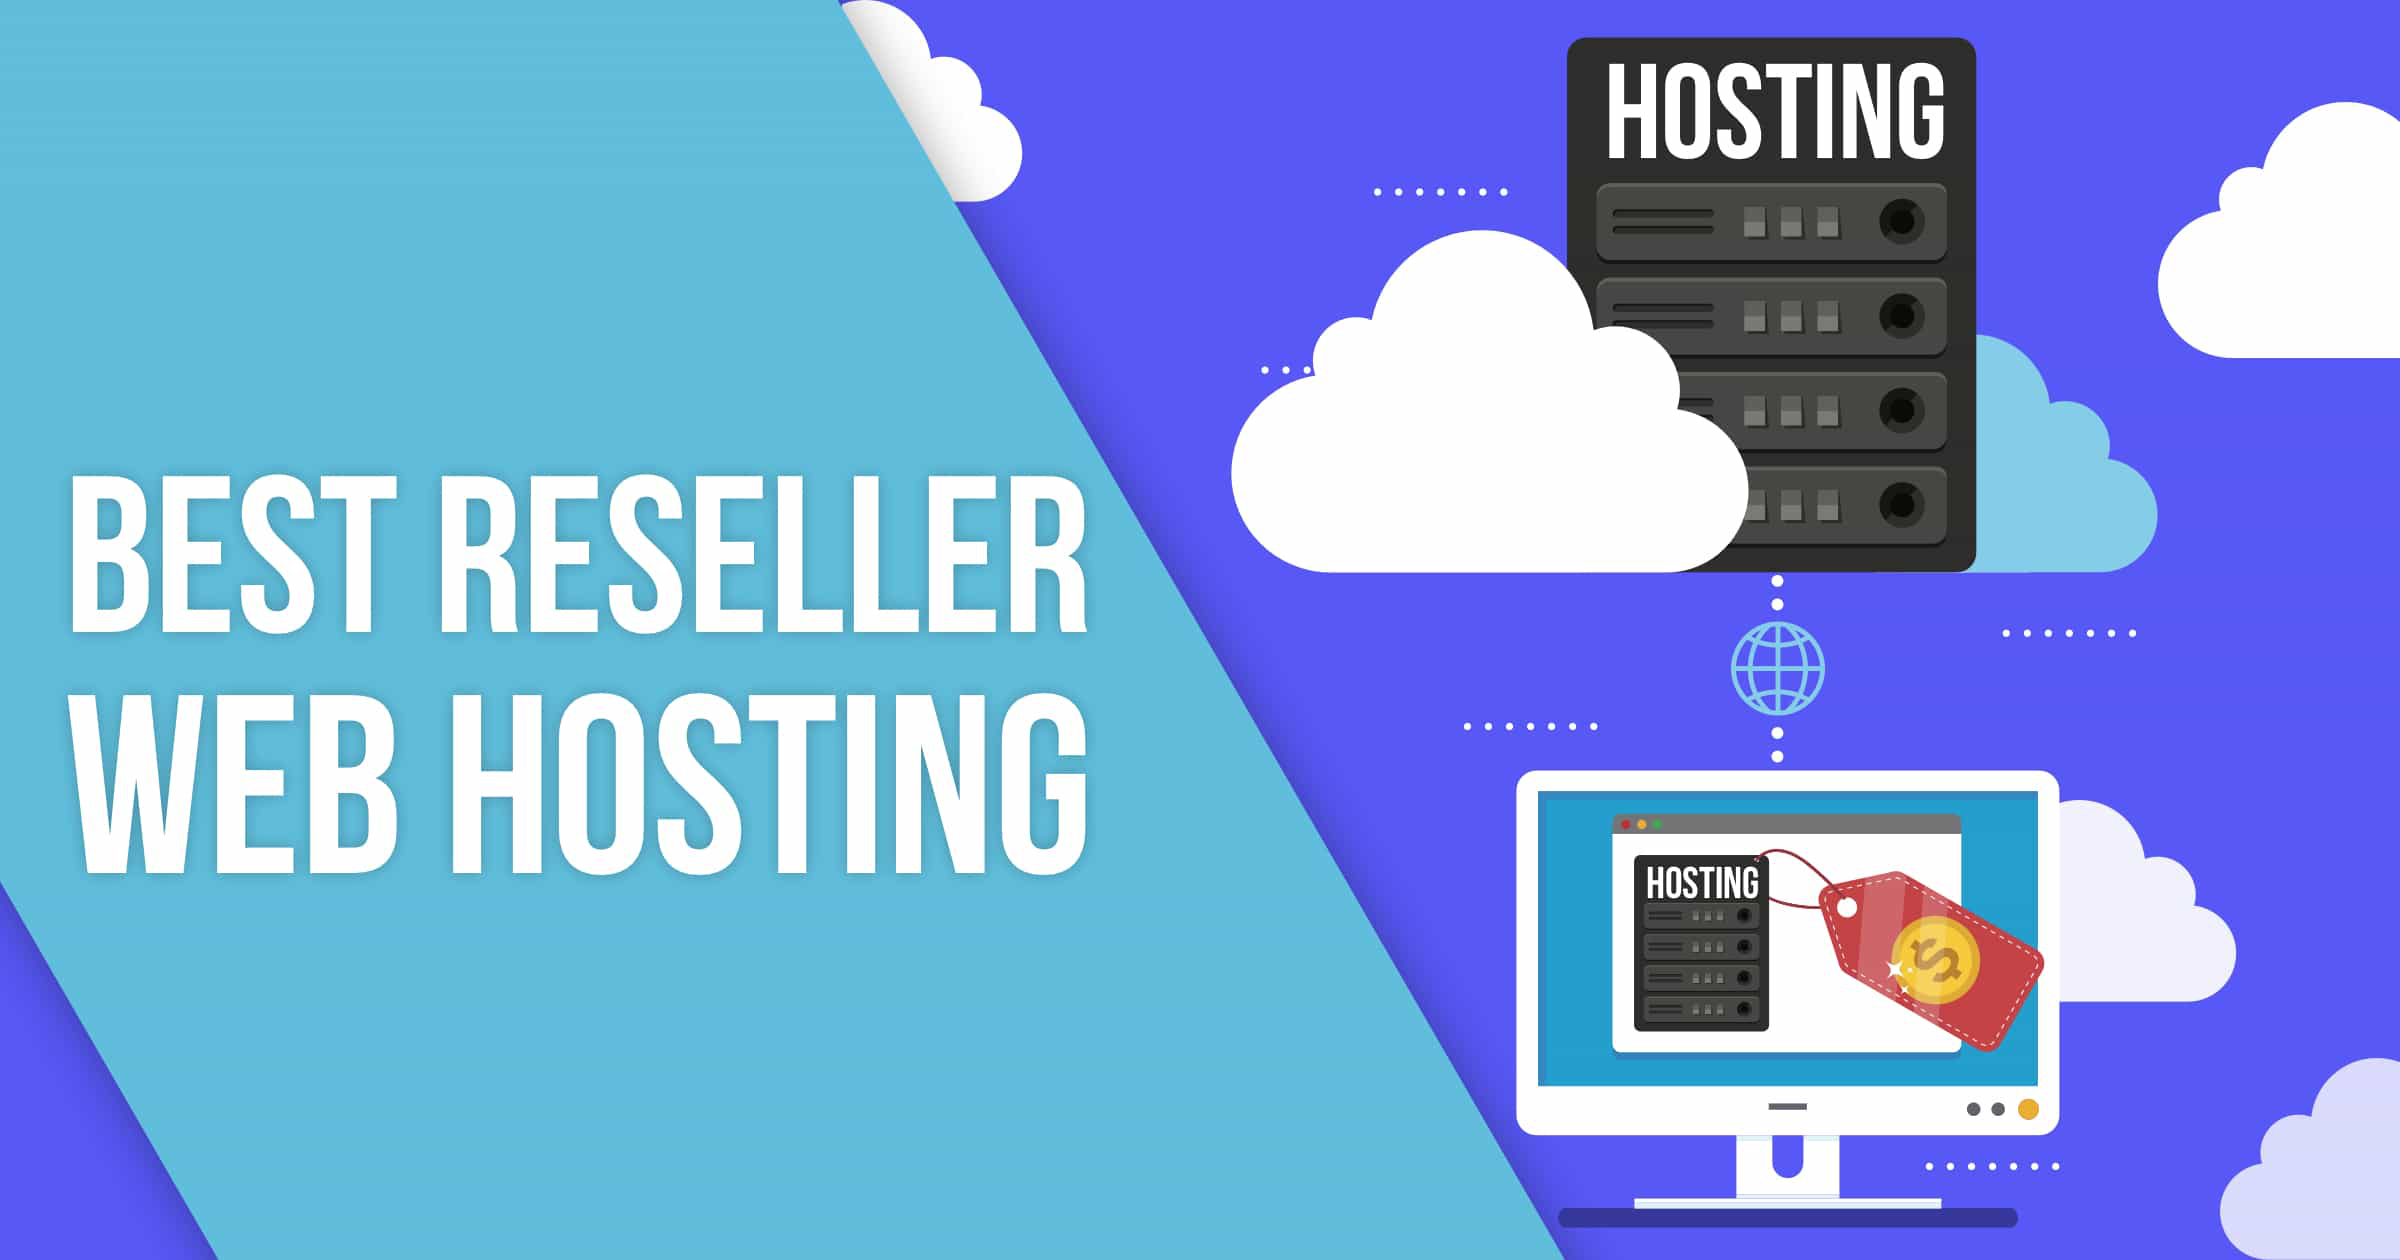 Unlimited Reseller Hosting - cPanel WHM Website Builder Free SSL's Softaculous + Much More